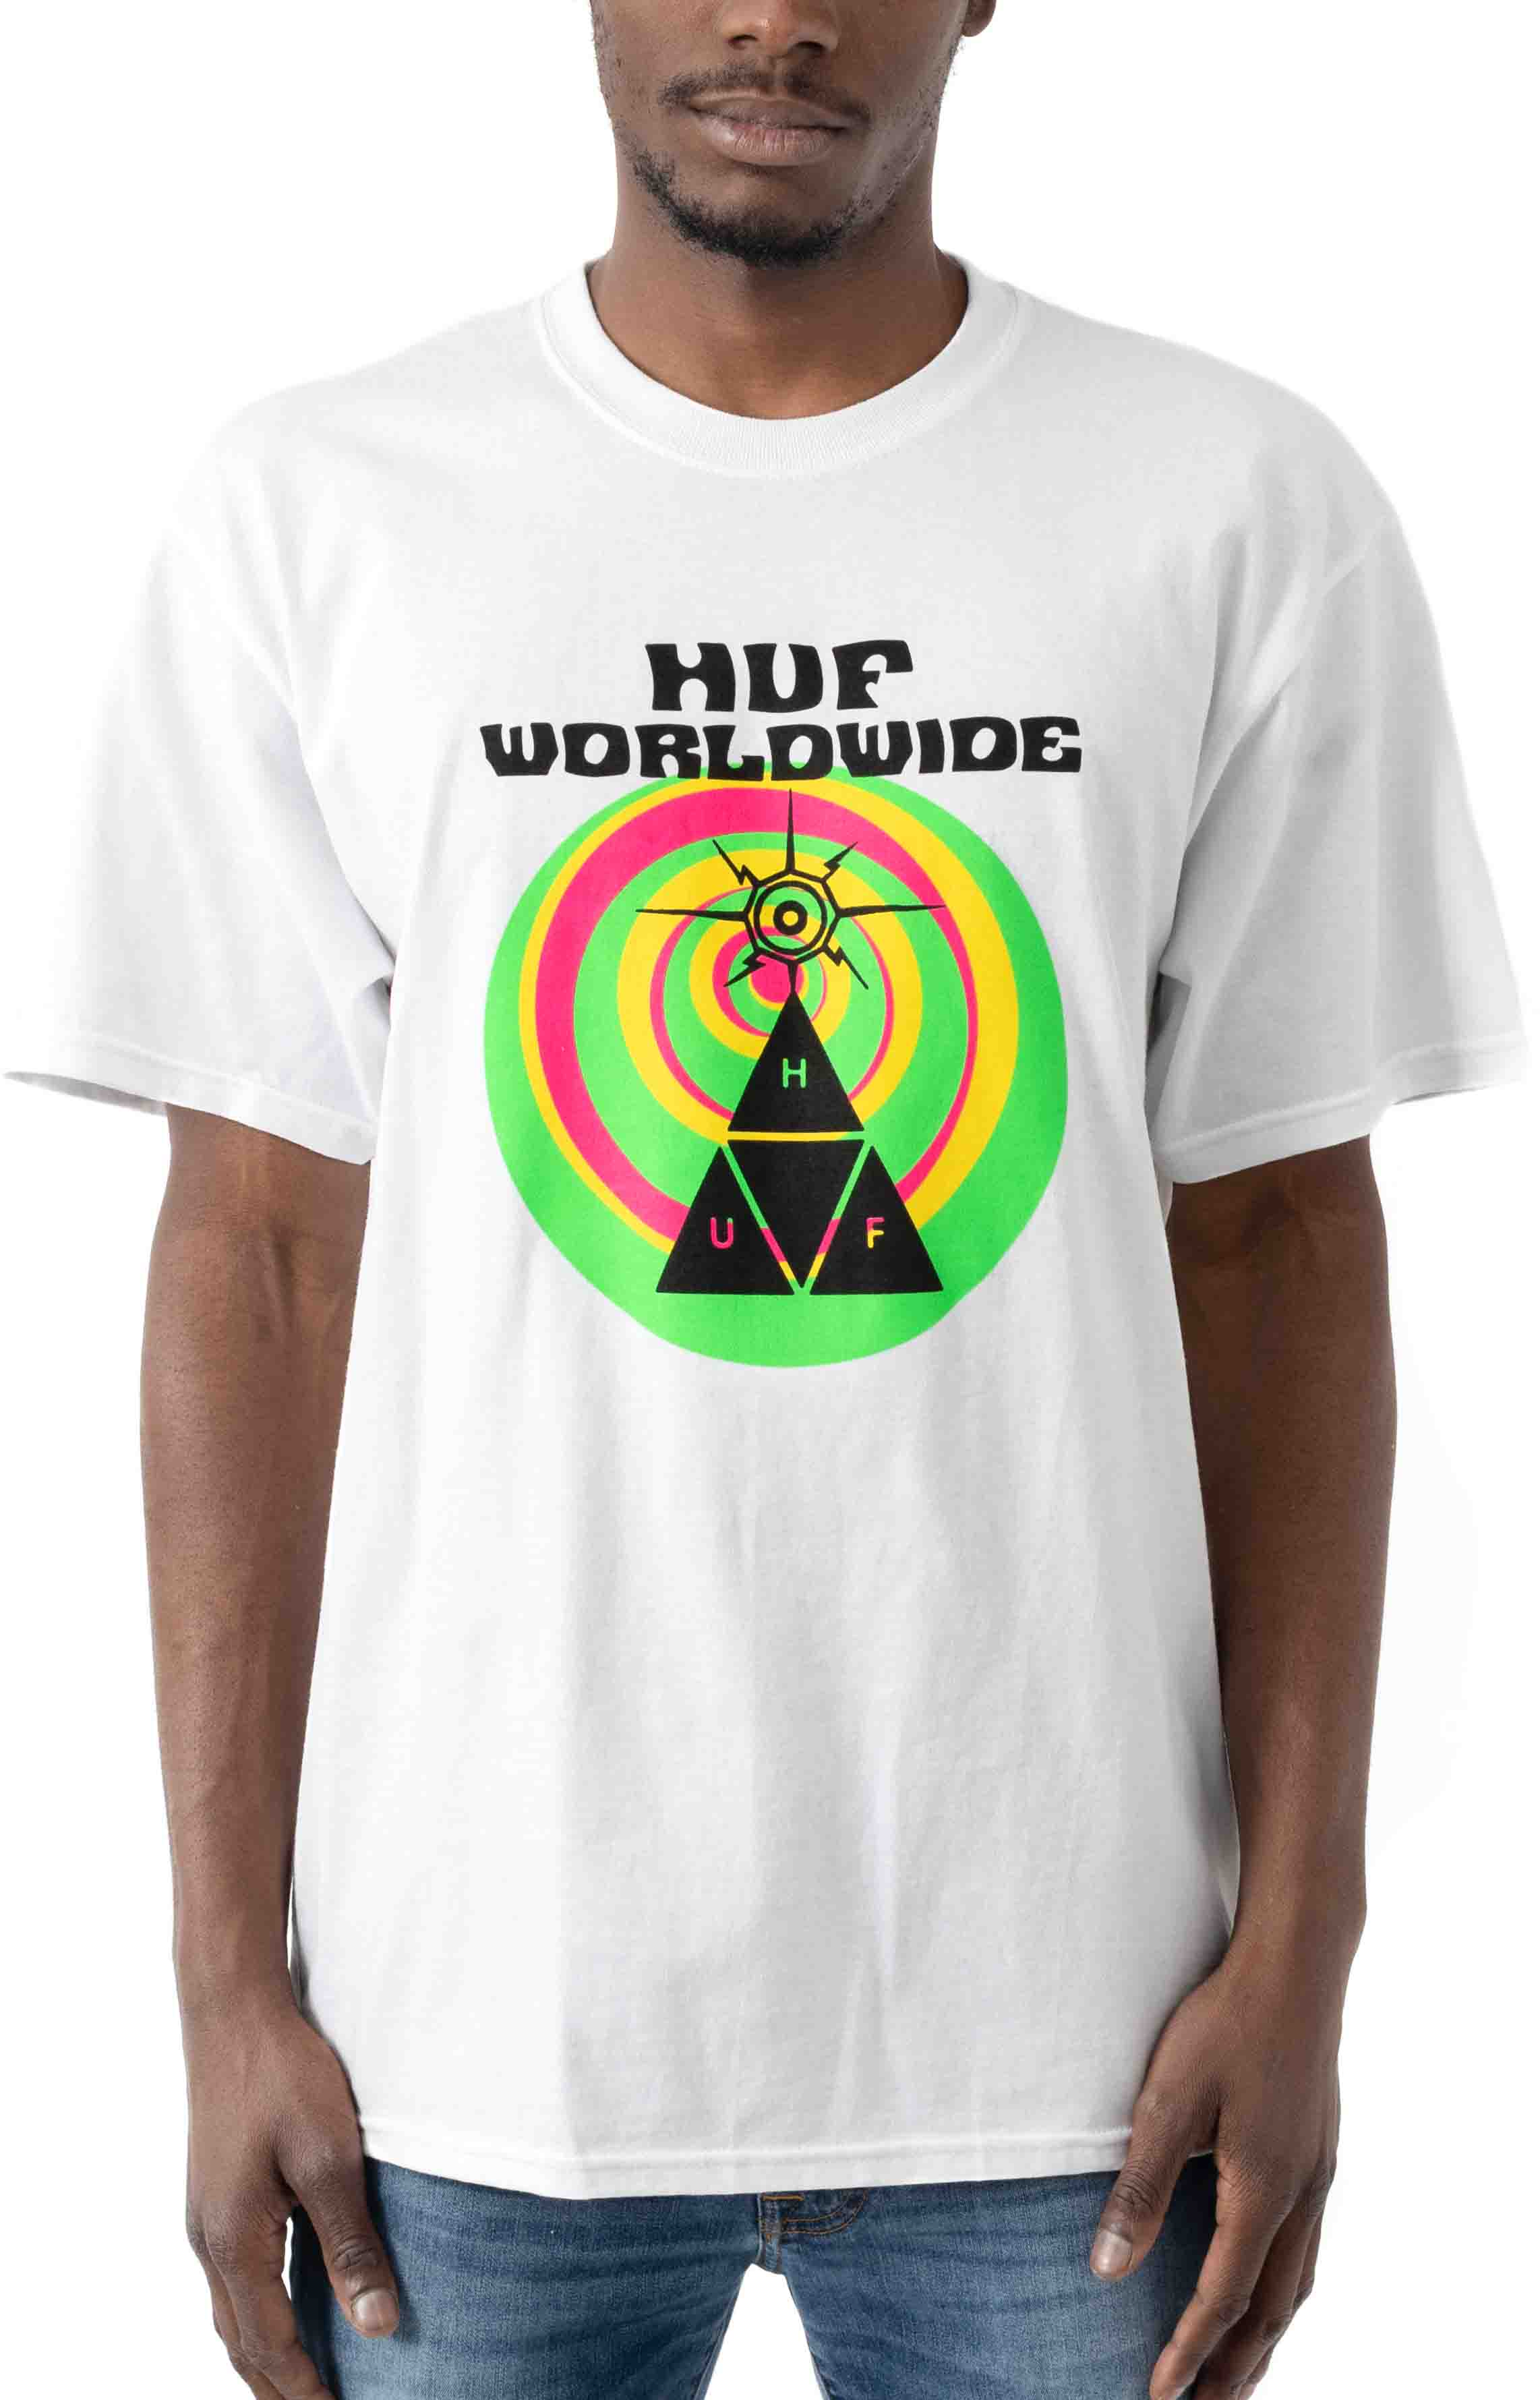 We Give You T-Shirt - White